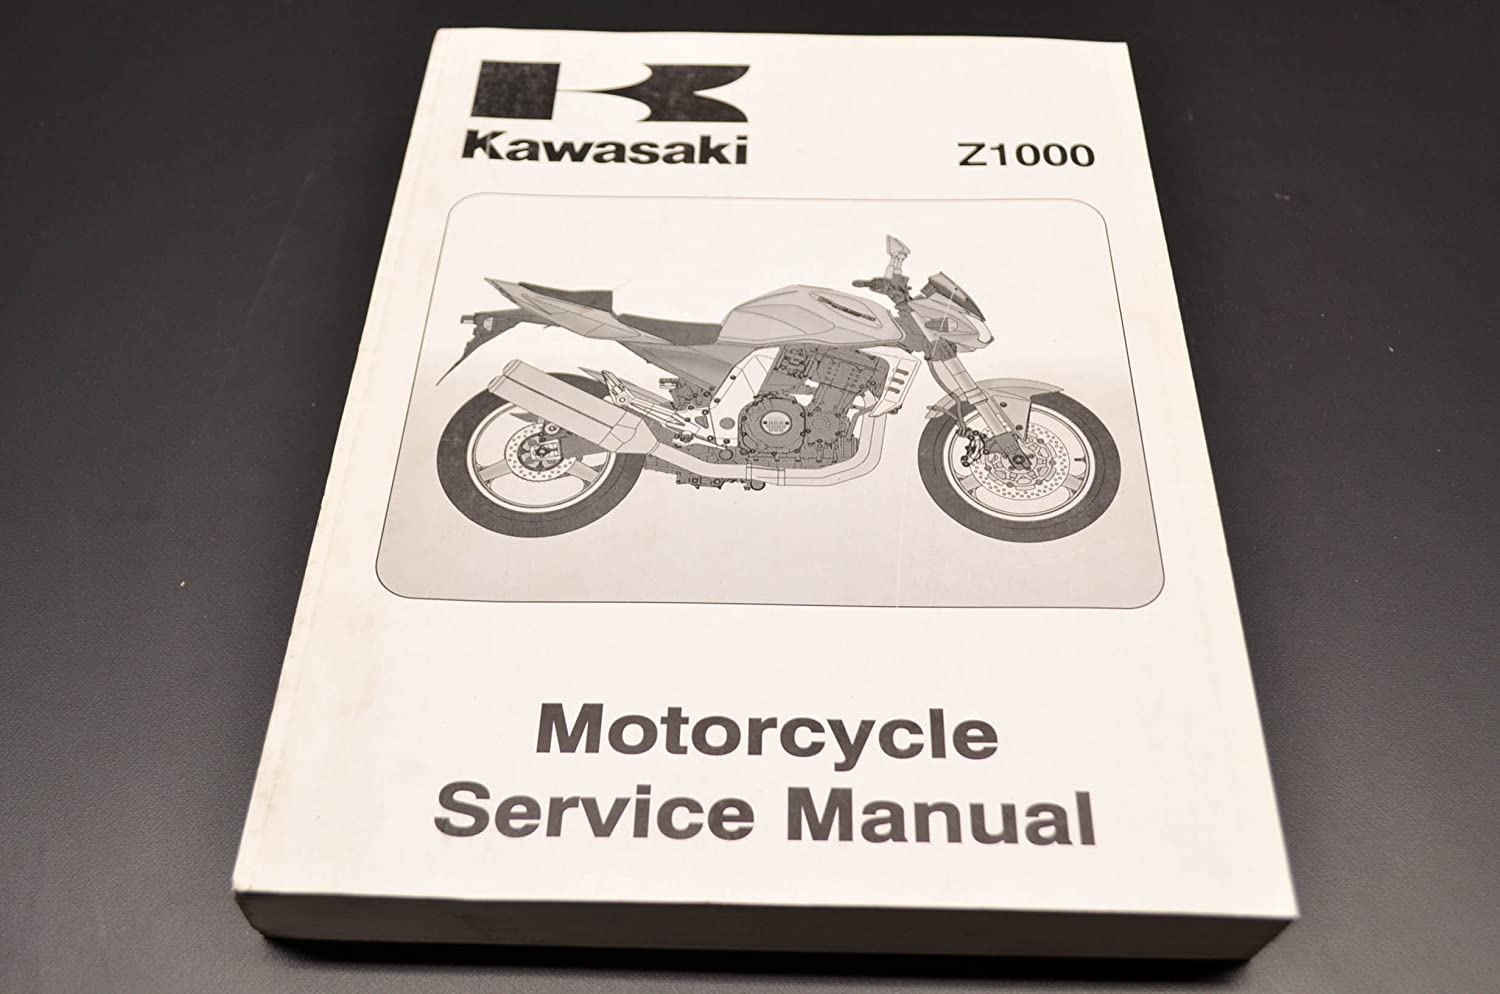 Kawasaki 99924 1310 01 03 Z1000 Service Manual Qty 1 Wiring Diagram Automotive